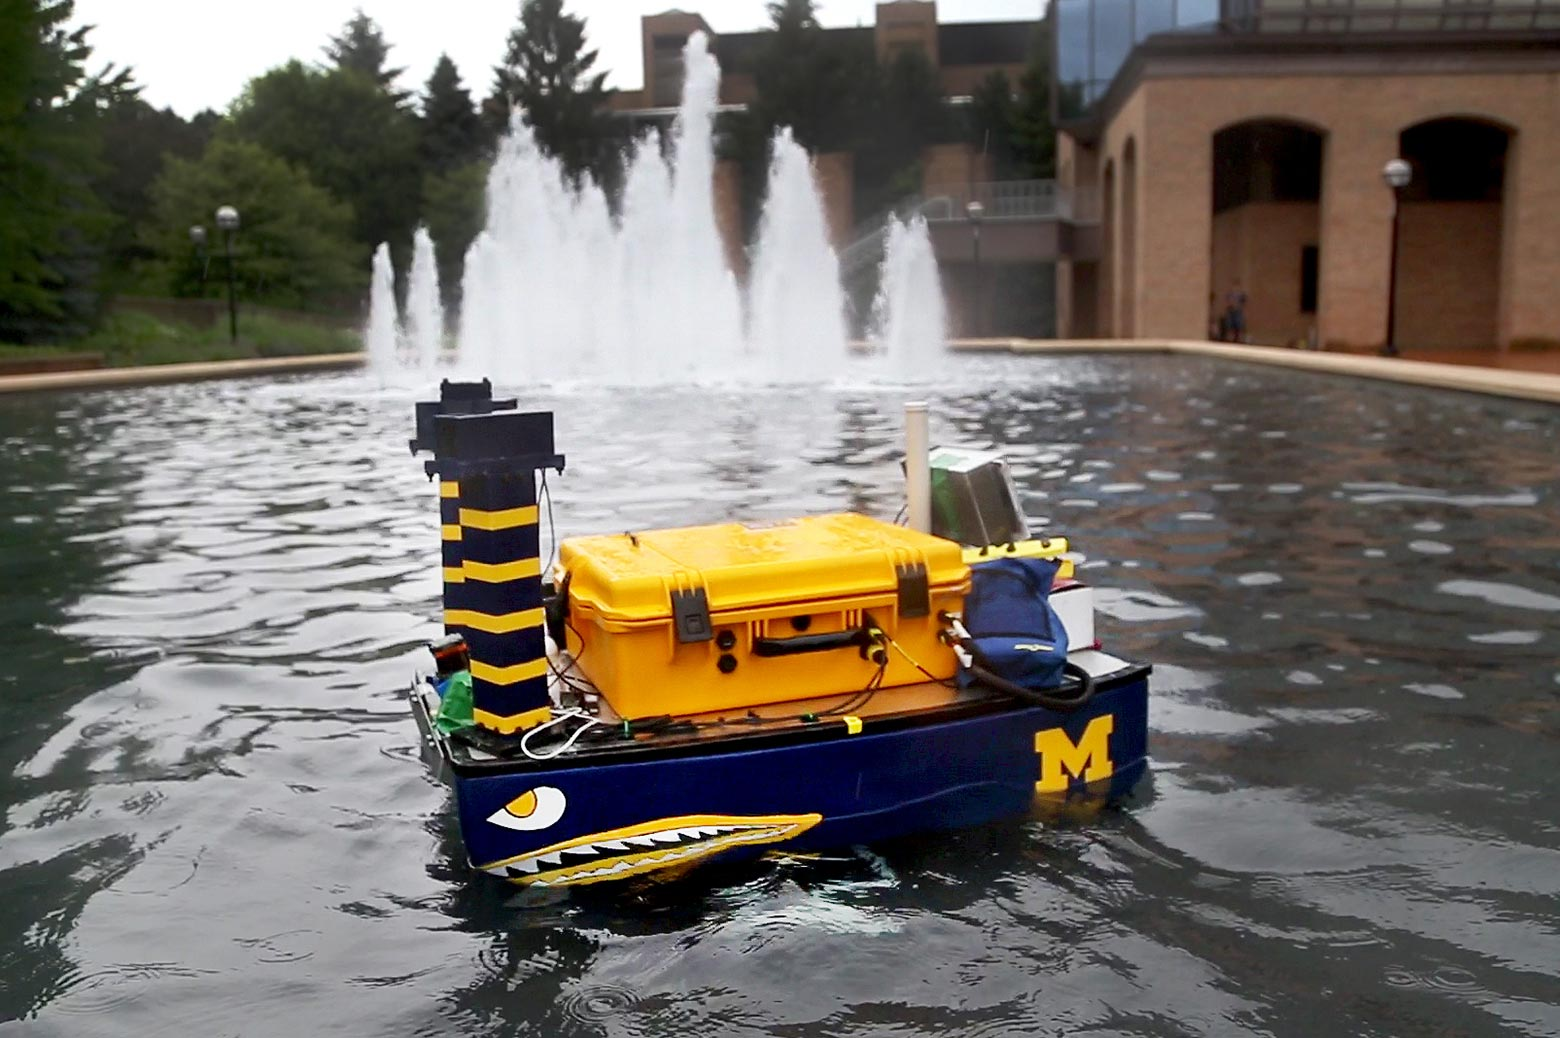 Autonomous boat in water